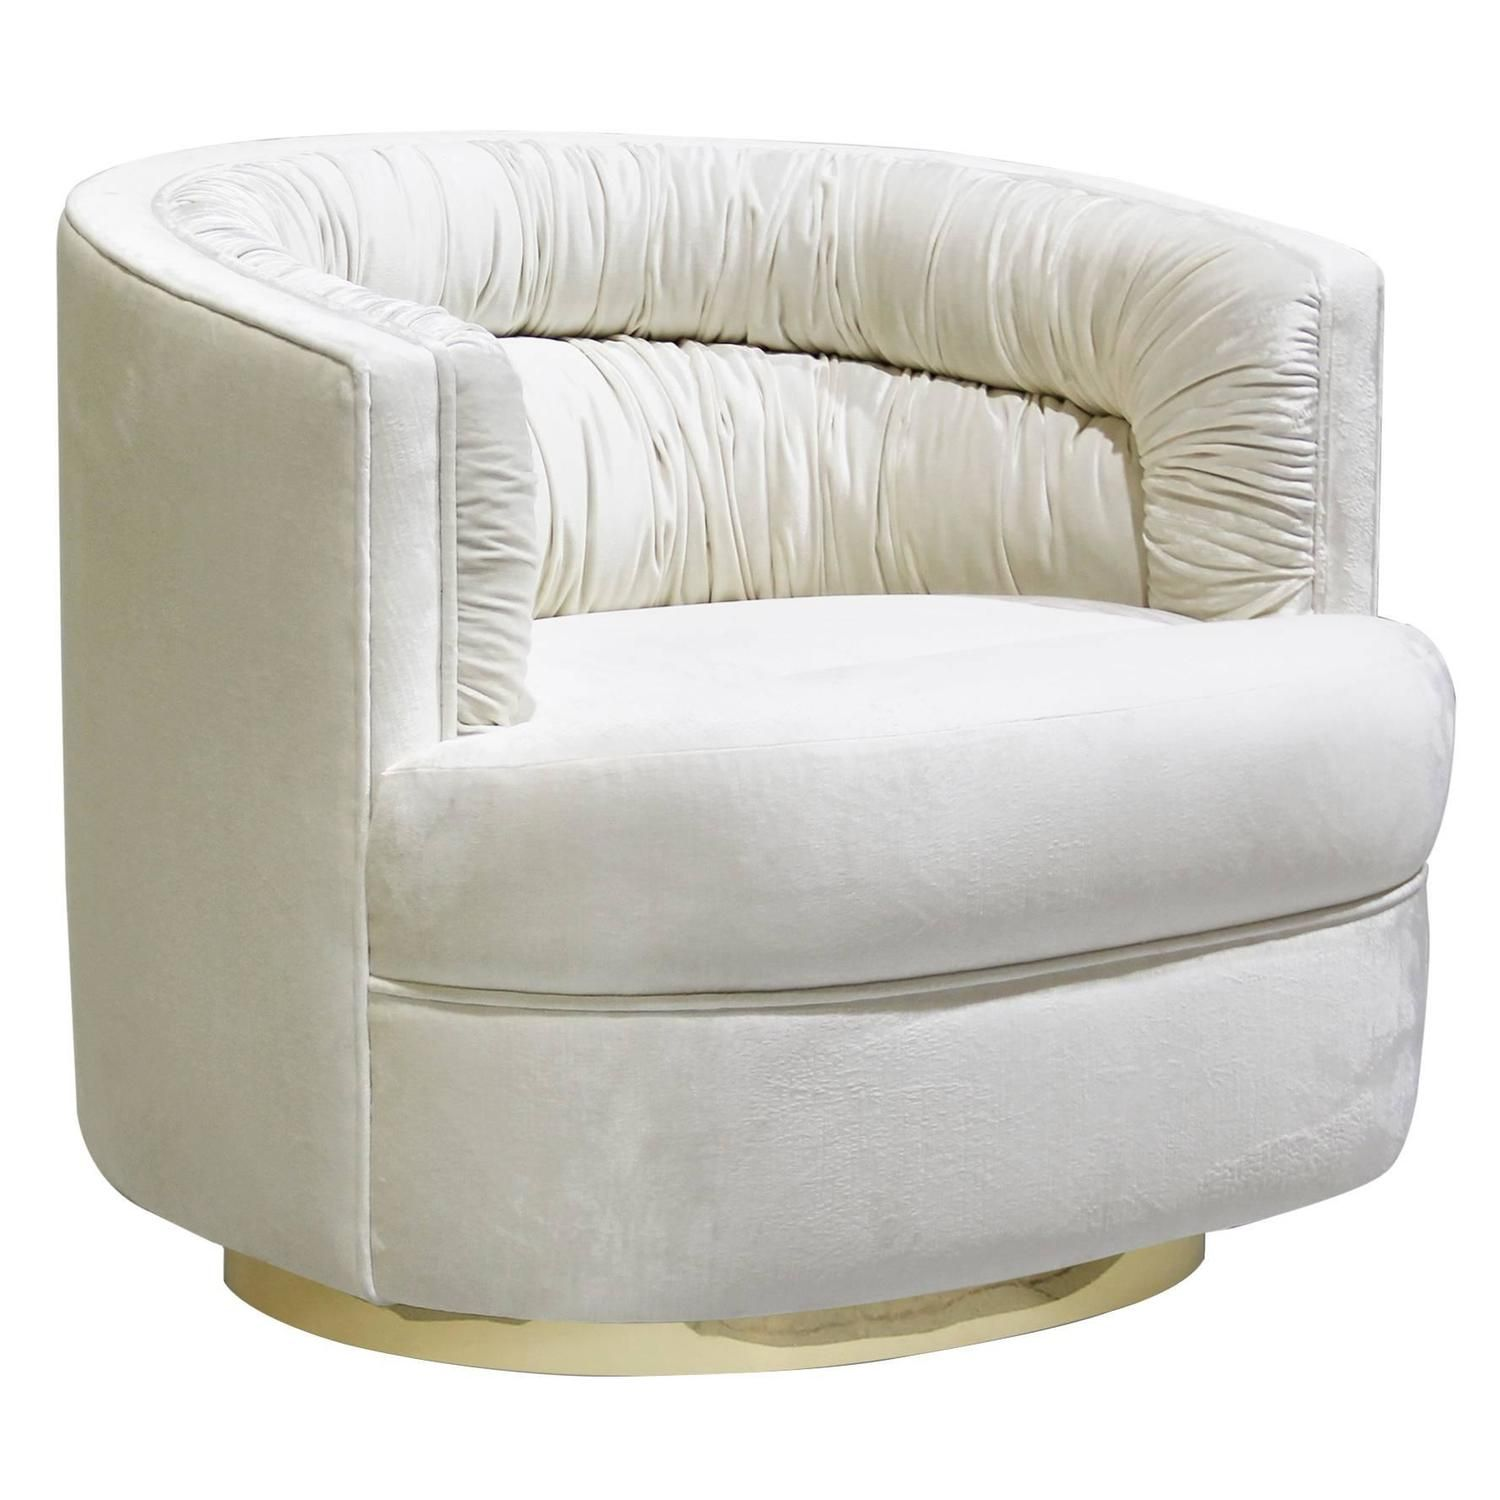 Pair of European and Brass Velvet Cocktail Lounge Armchairs by Koket